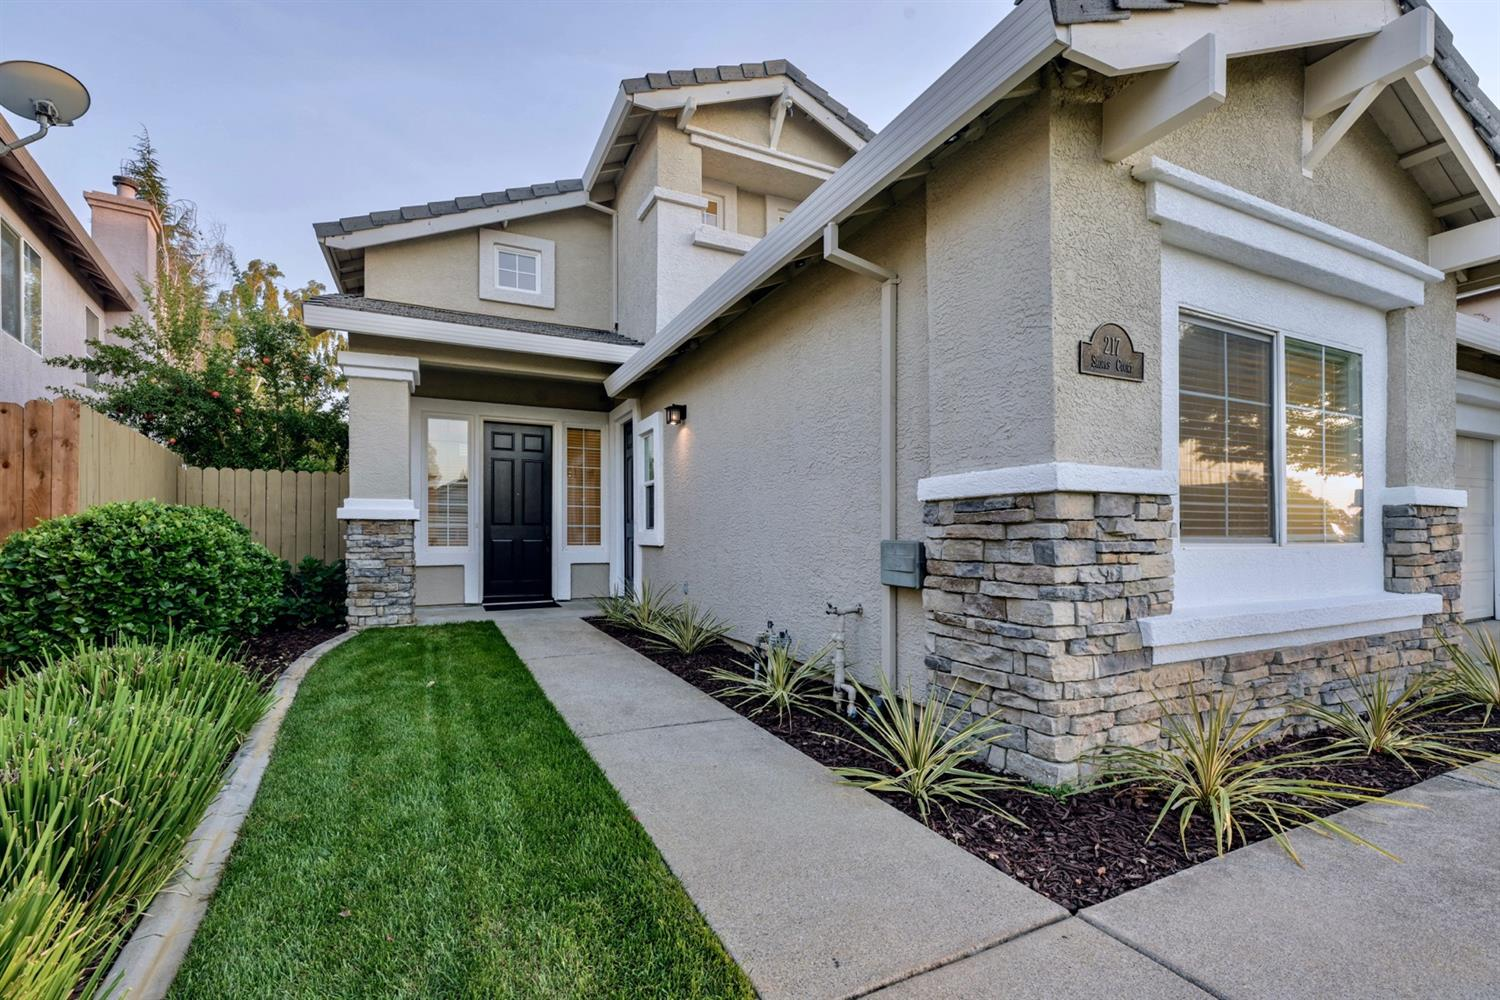 Photo 3 for Listing #221121872